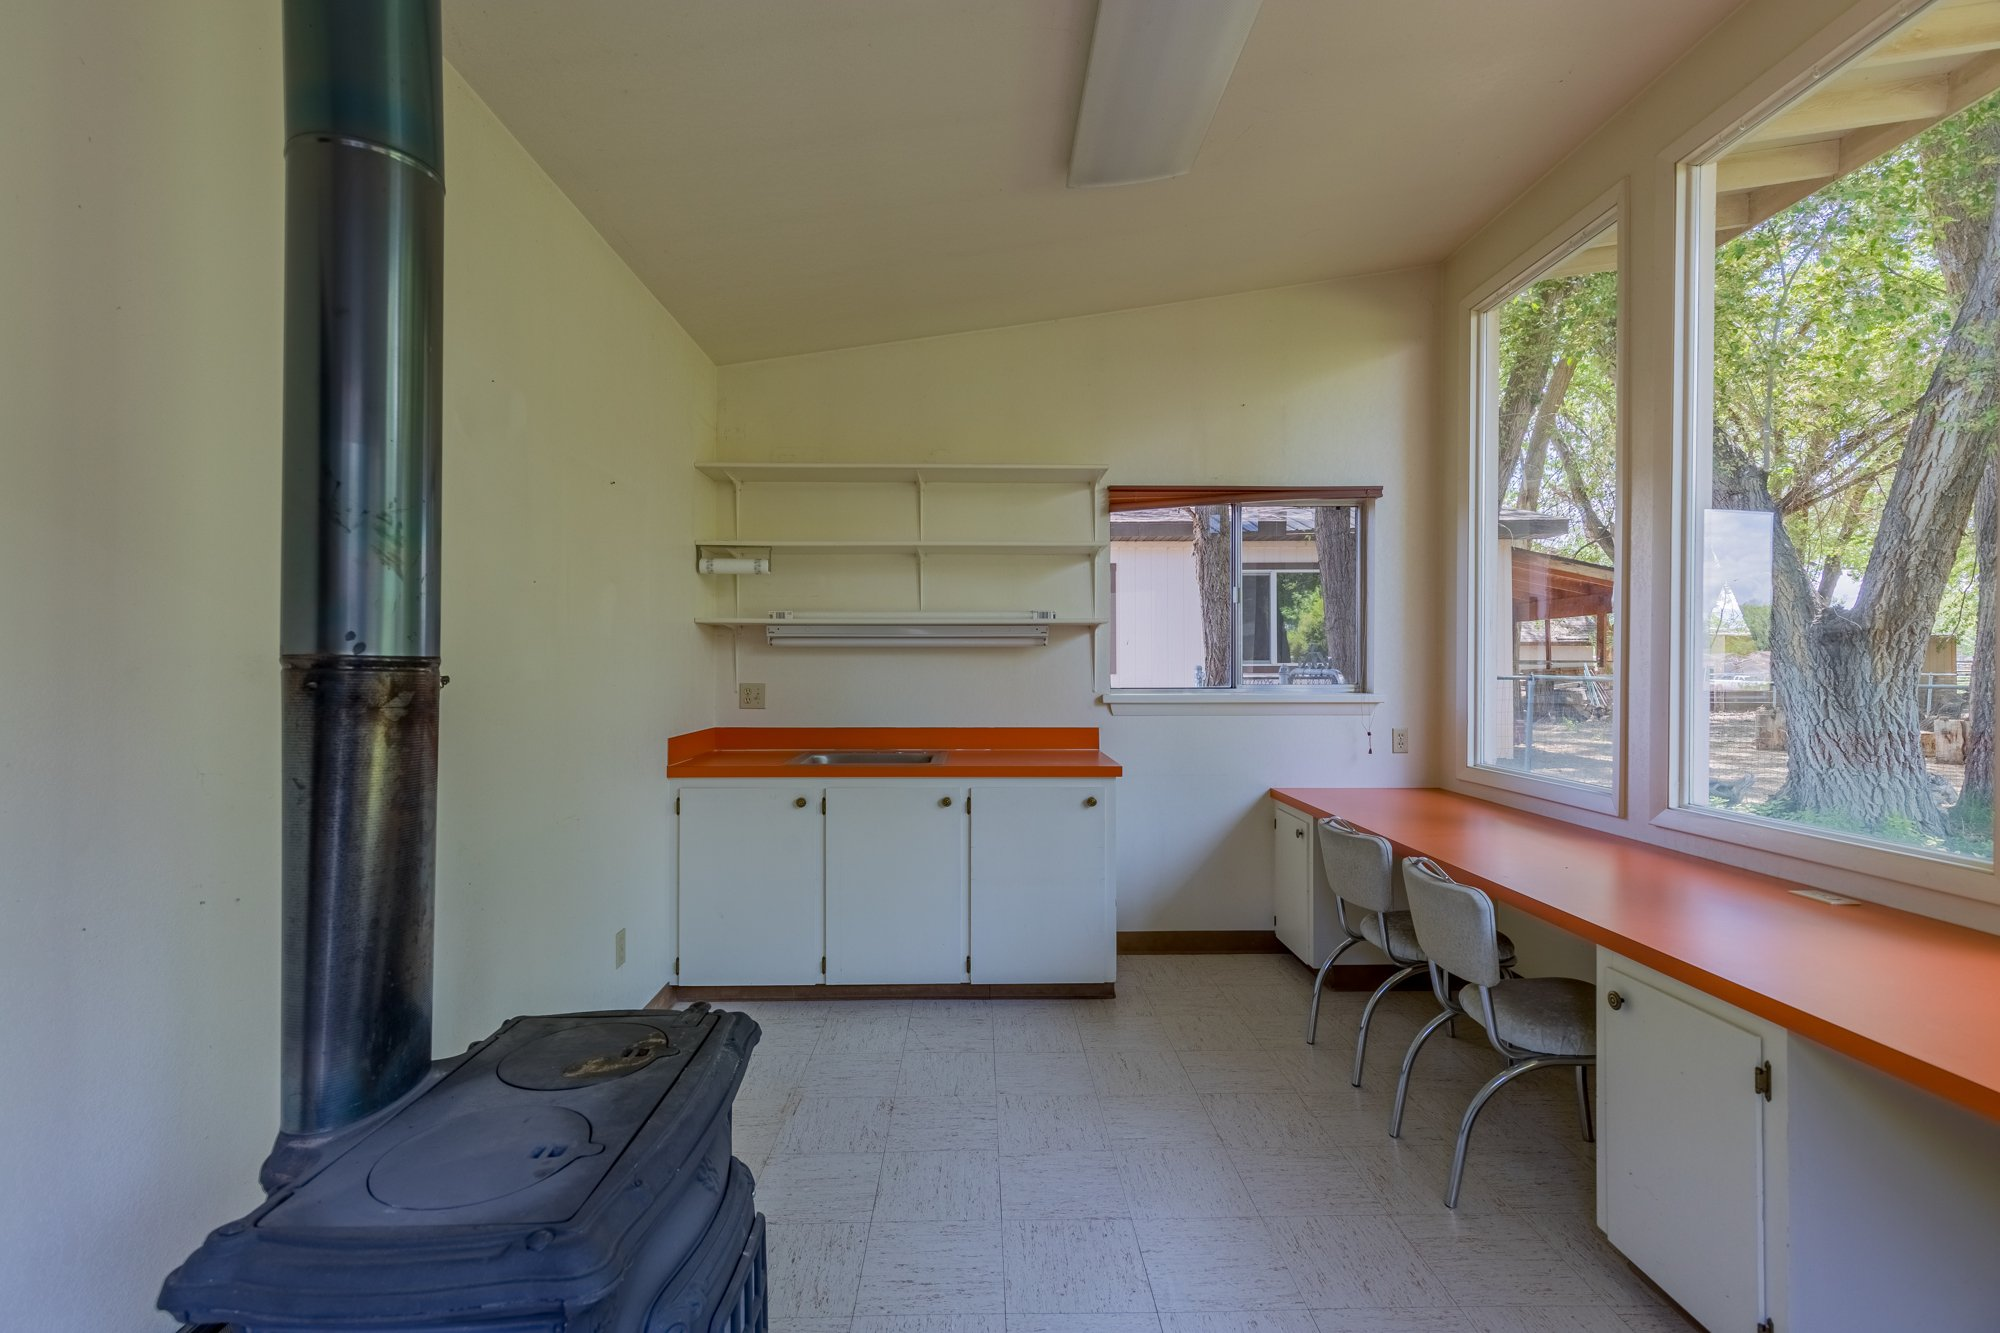 Shed with Wood Stove - 418 6400 Rd Montrose, CO 81403 - Atha Team Realty